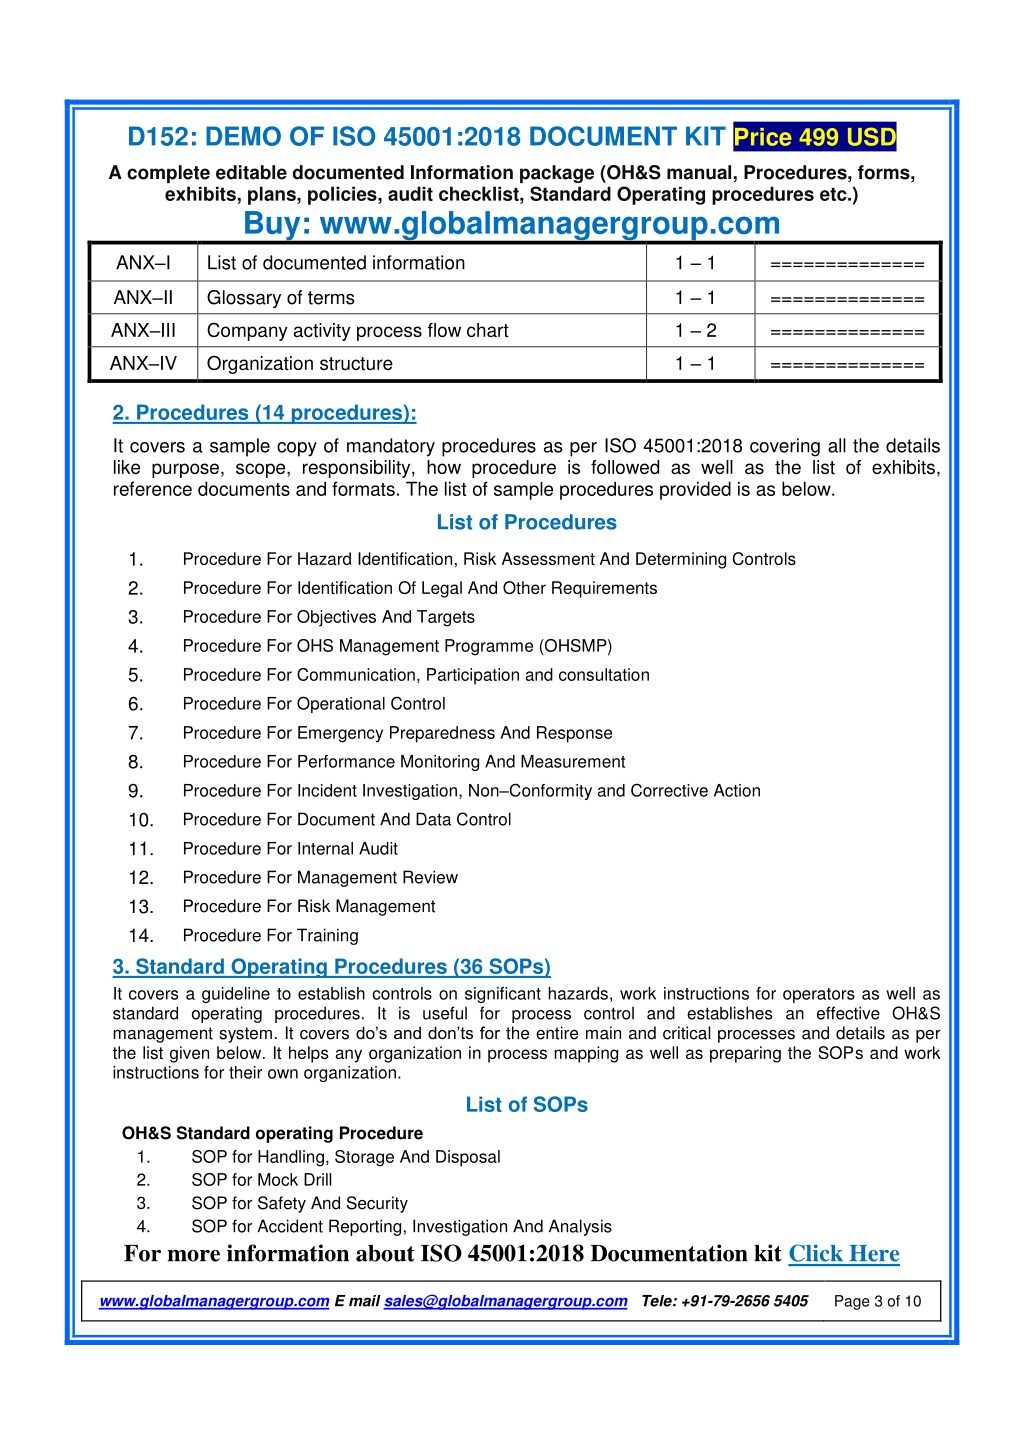 PPT - Required Documents for ISO 45001:2018 Certification